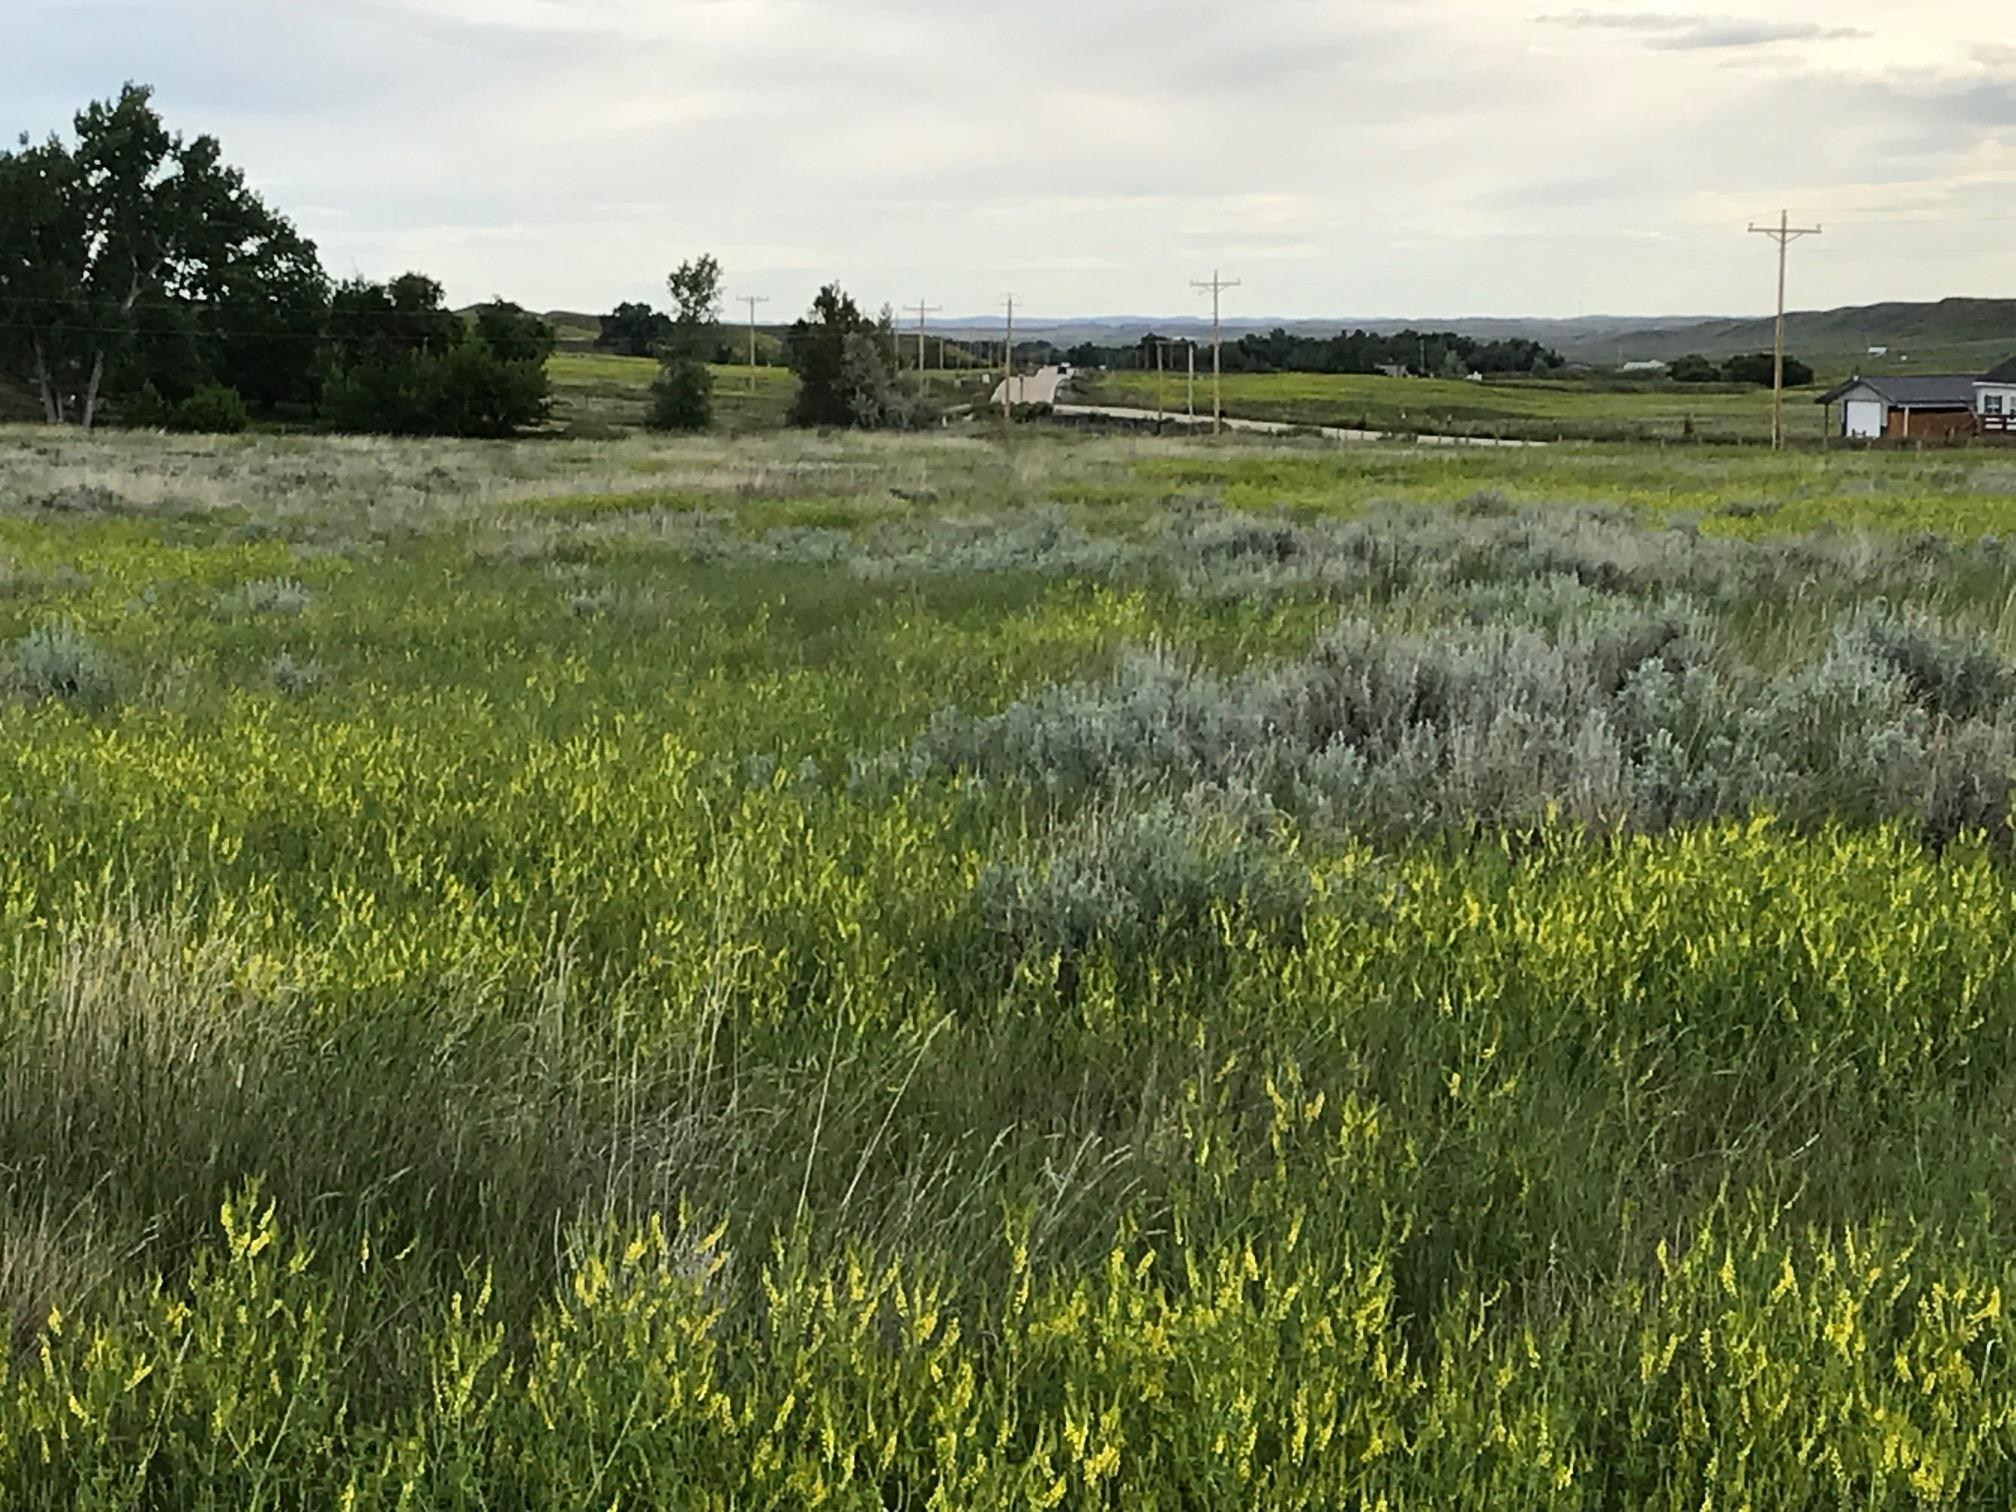 Lot 19 TBD, Buffalo, Wyoming 82834, ,Building Site,For Sale,TBD,17-730